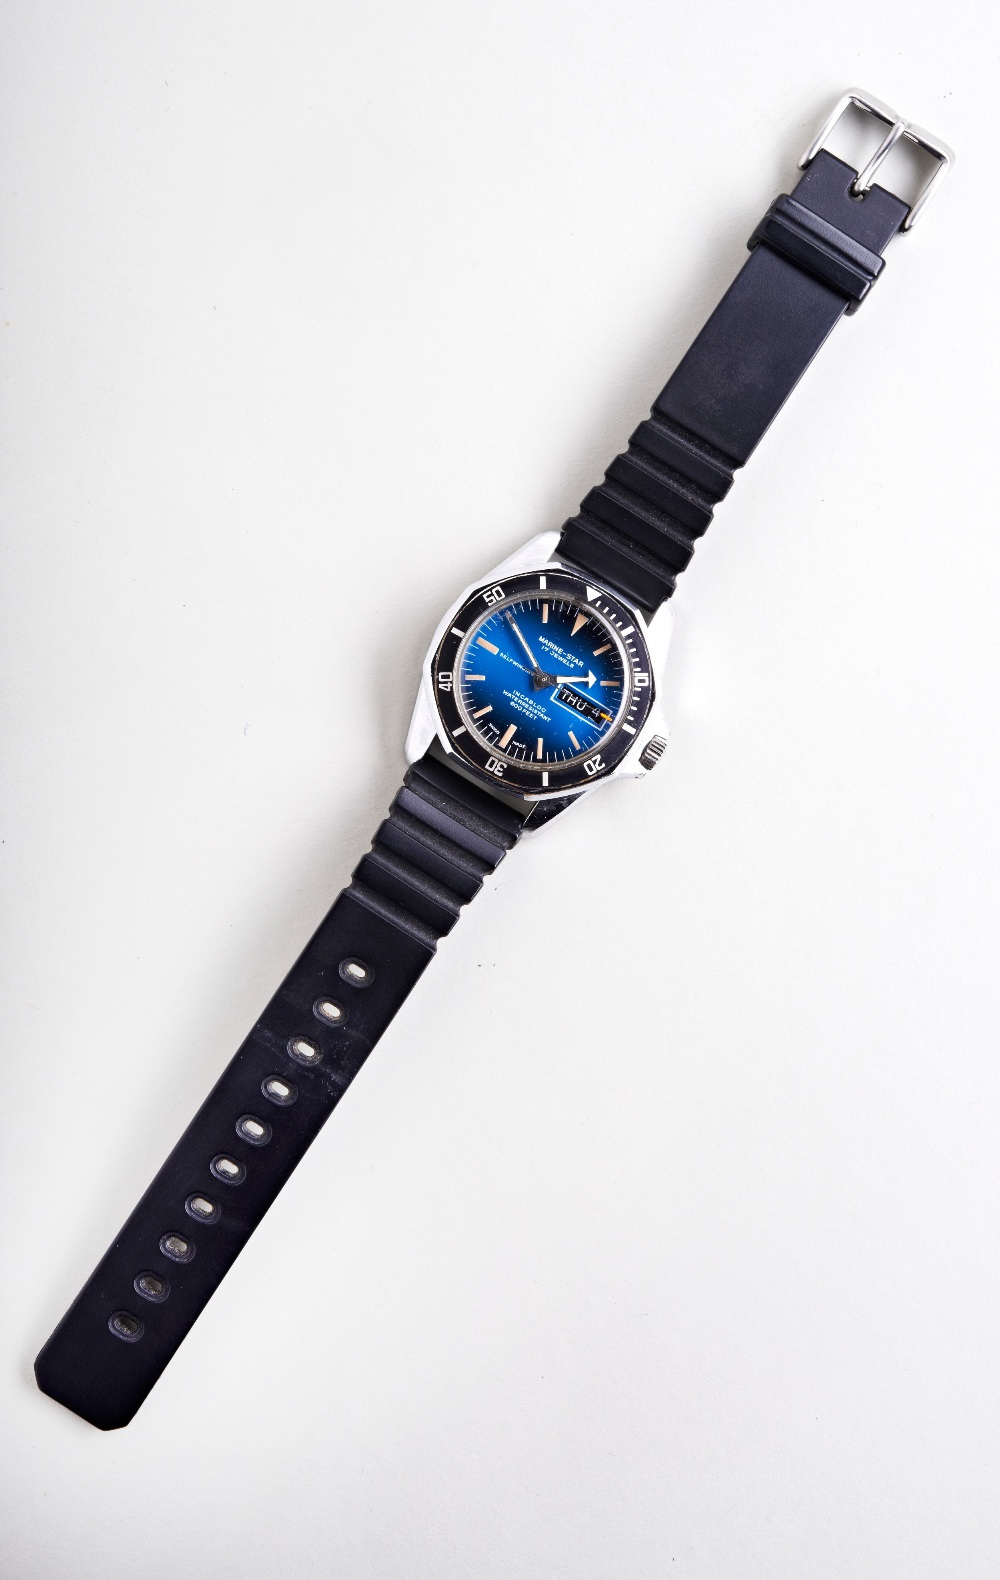 SICURA MARINE STAR AUTOMATIC STEEL 'DIVERS' WATCH, c1975, with rotating bezel, blue gradient dial - Image 2 of 3